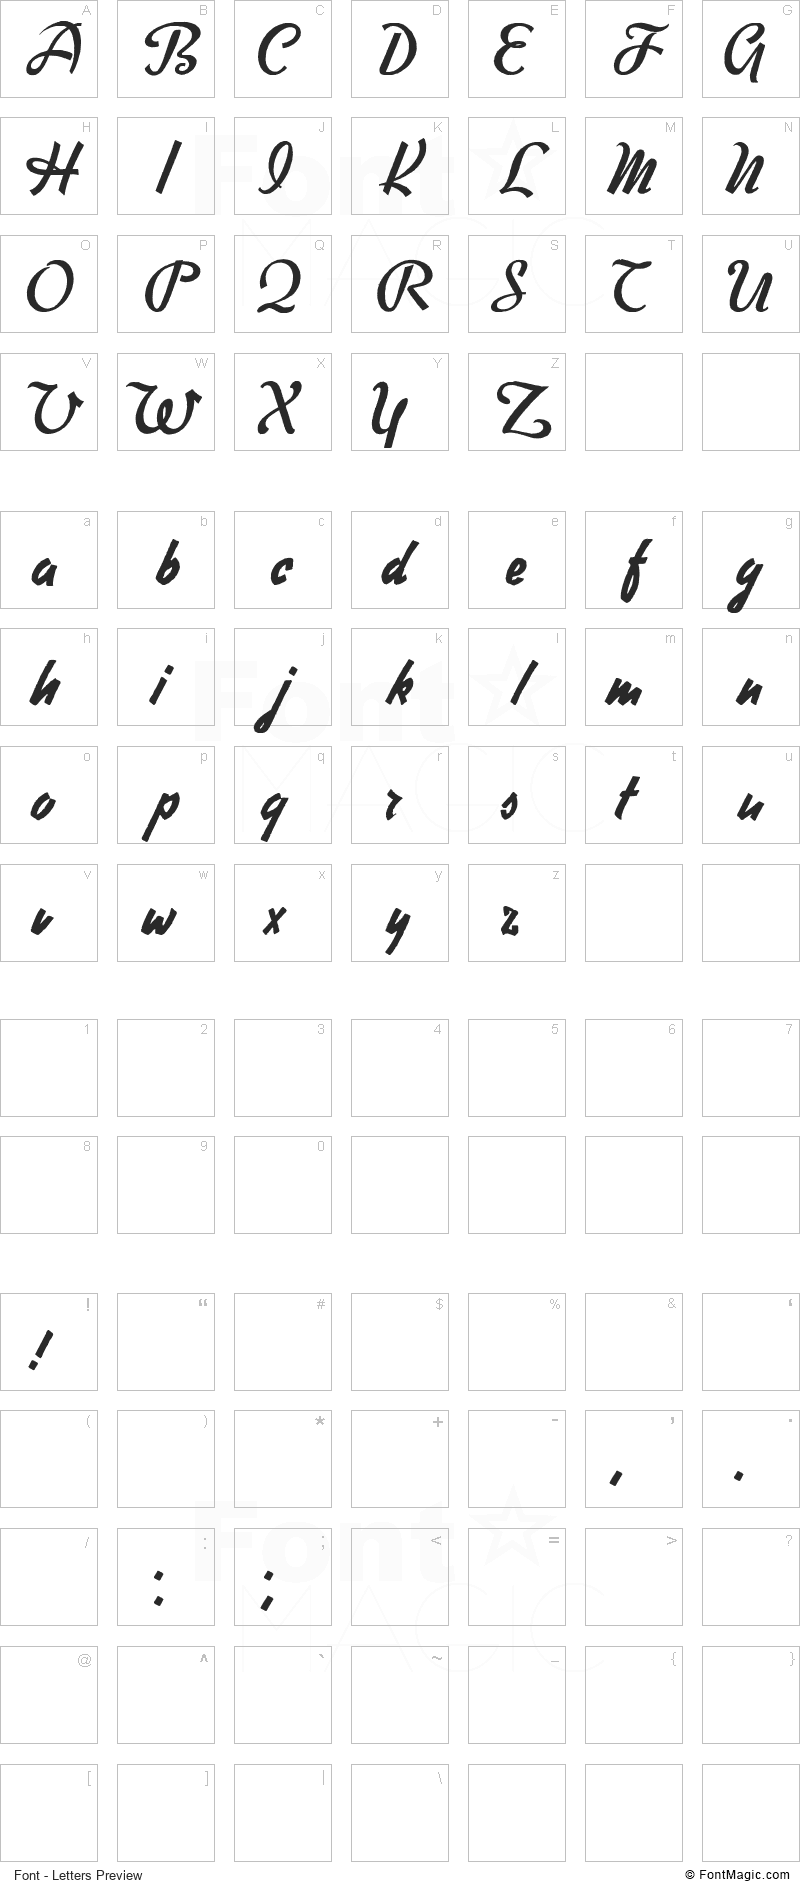 Free Writer Font - All Latters Preview Chart